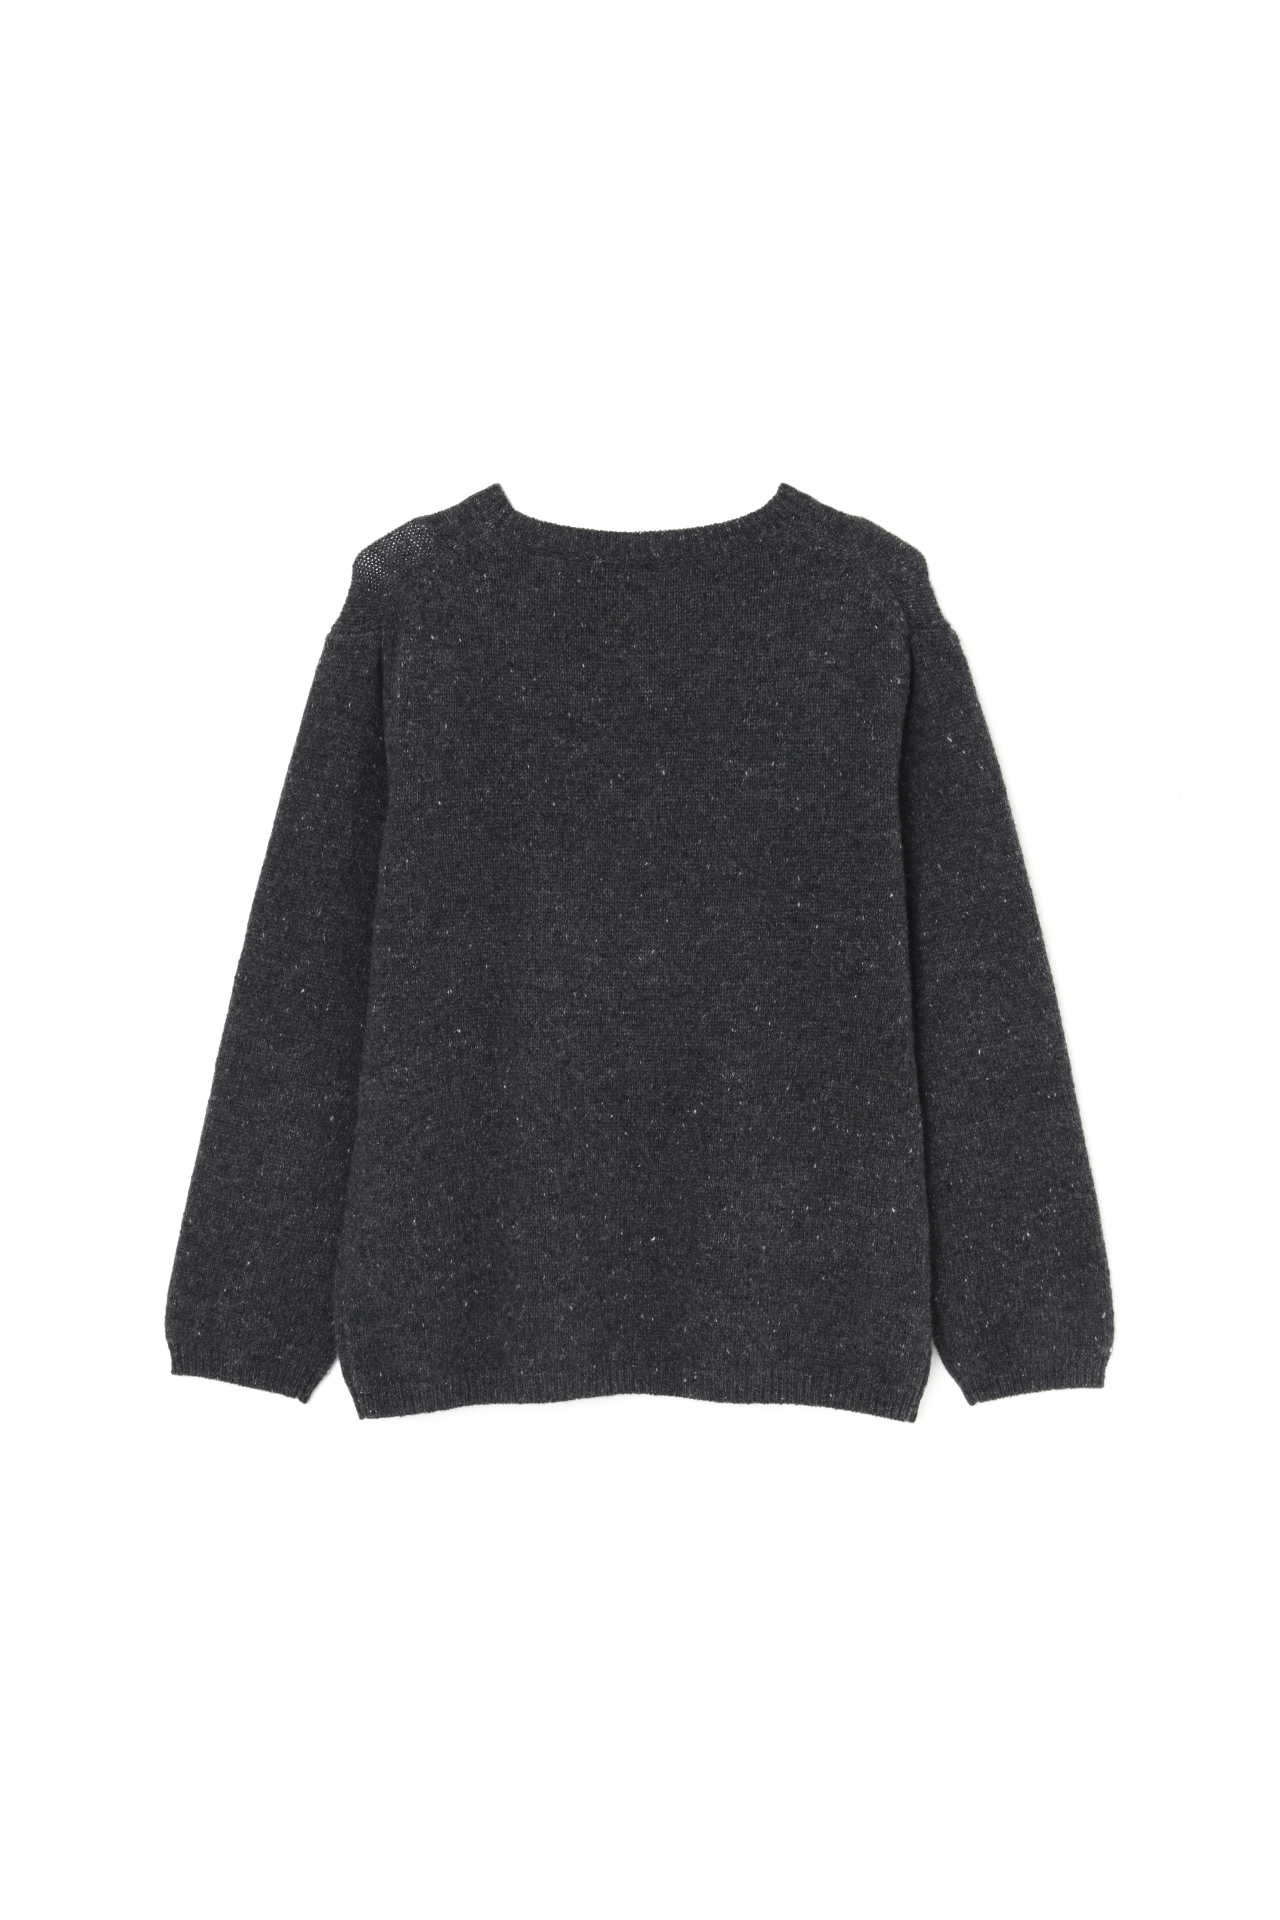 DONEGAL WOOL CASHMERE JUMPER2